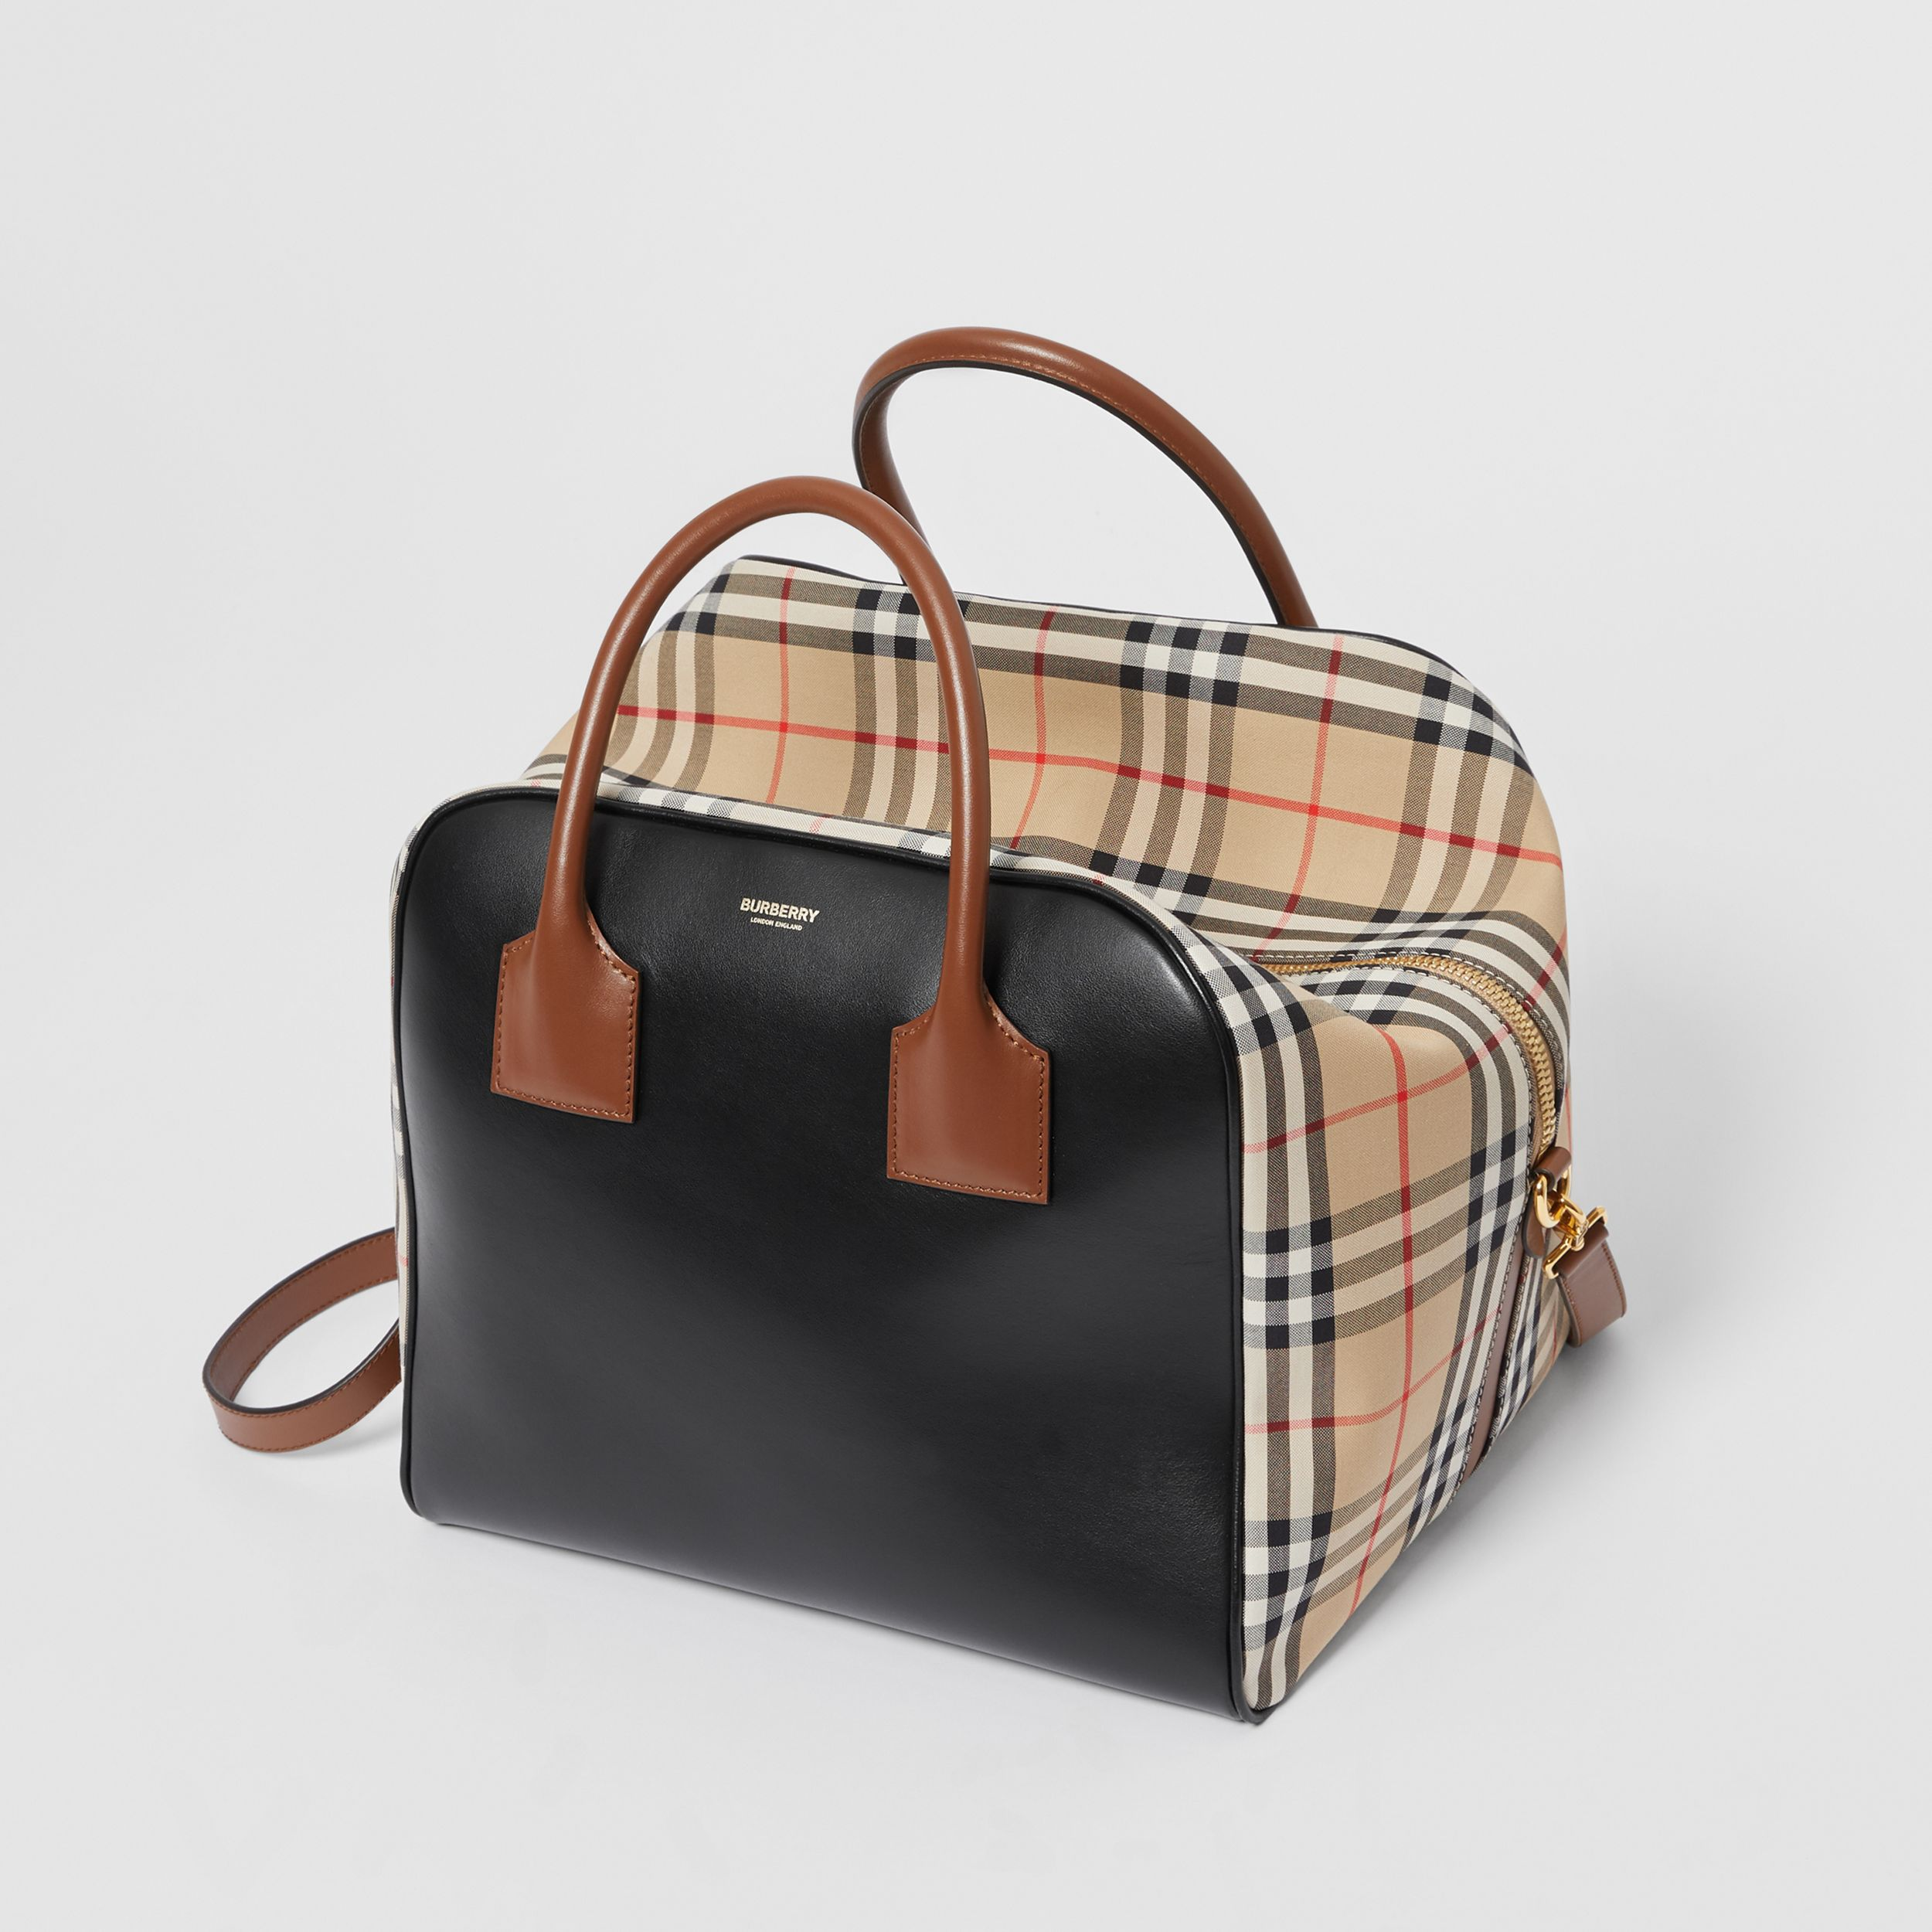 Medium Leather and Vintage Check Cube Bag in Archive Beige - Women | Burberry - 4